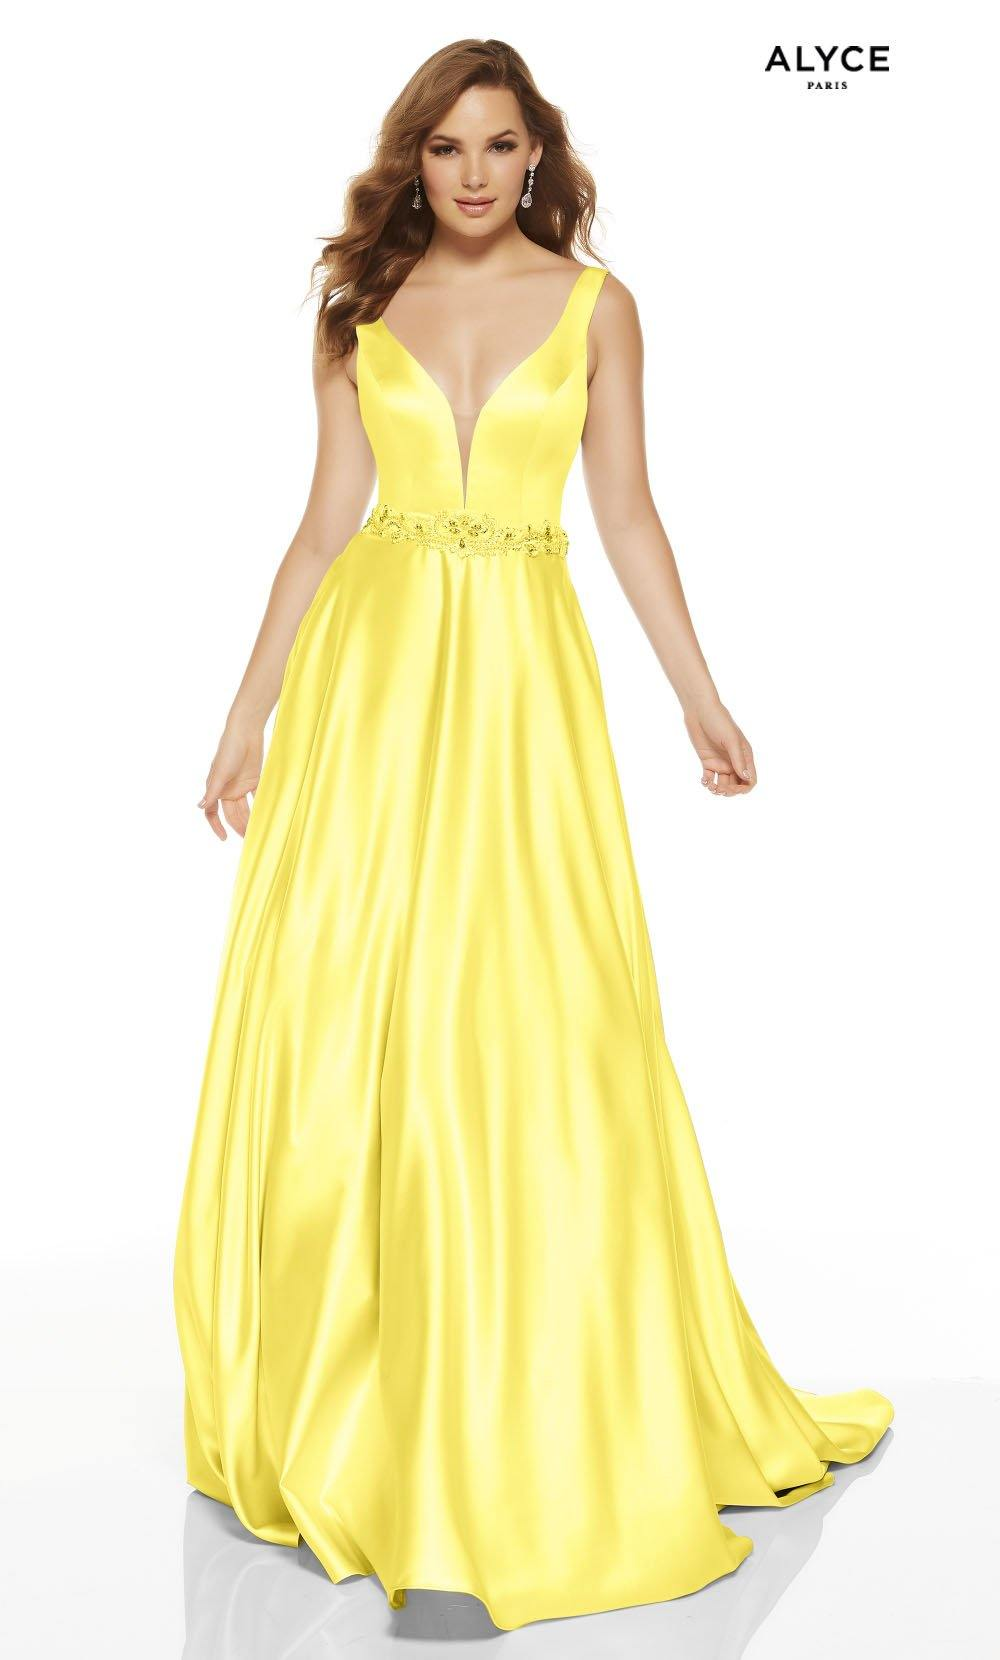 Yellow luminous satin A line prom dress with a plunging neckline and beaded natural waistline